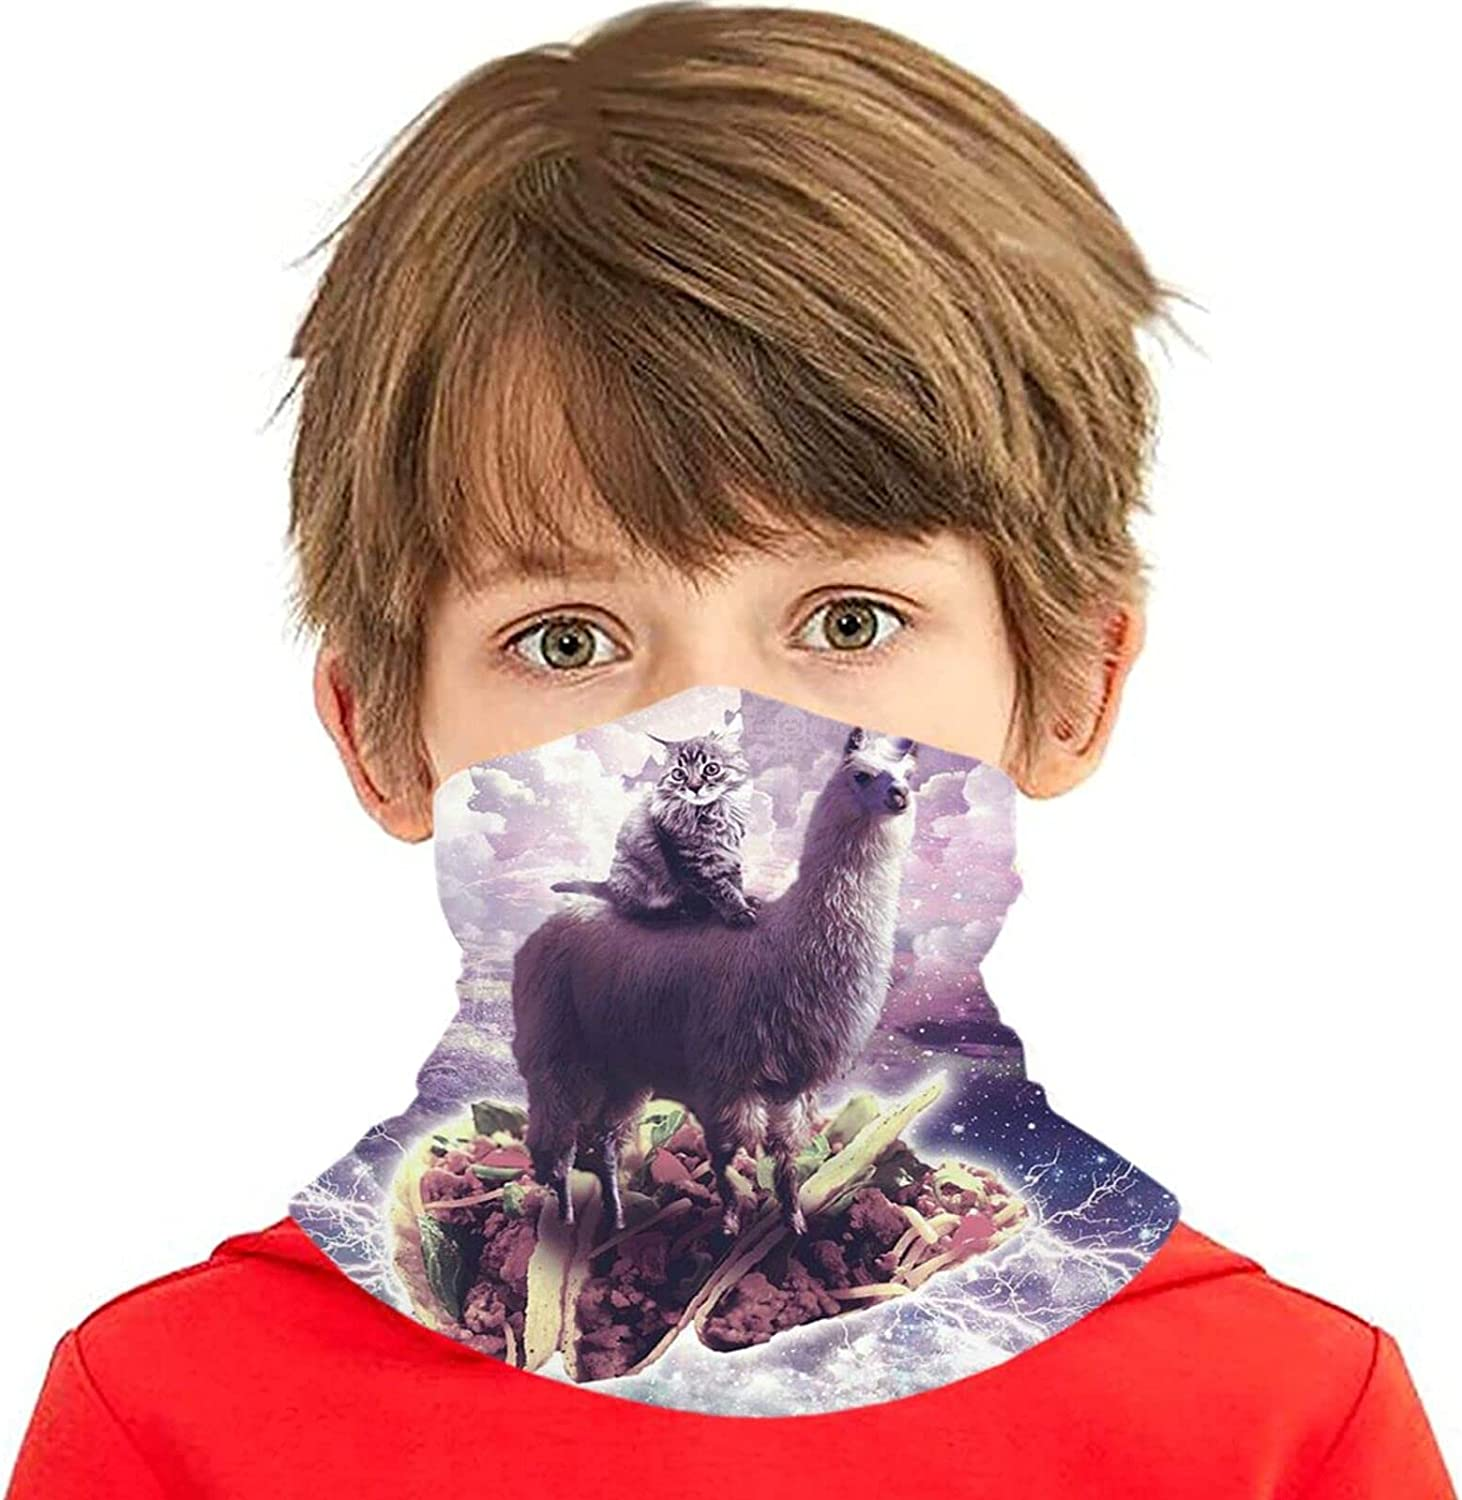 rerw famous Children Headwear Face Mask Space Cat Cheap mail order specialty store But Taco Llama Riding